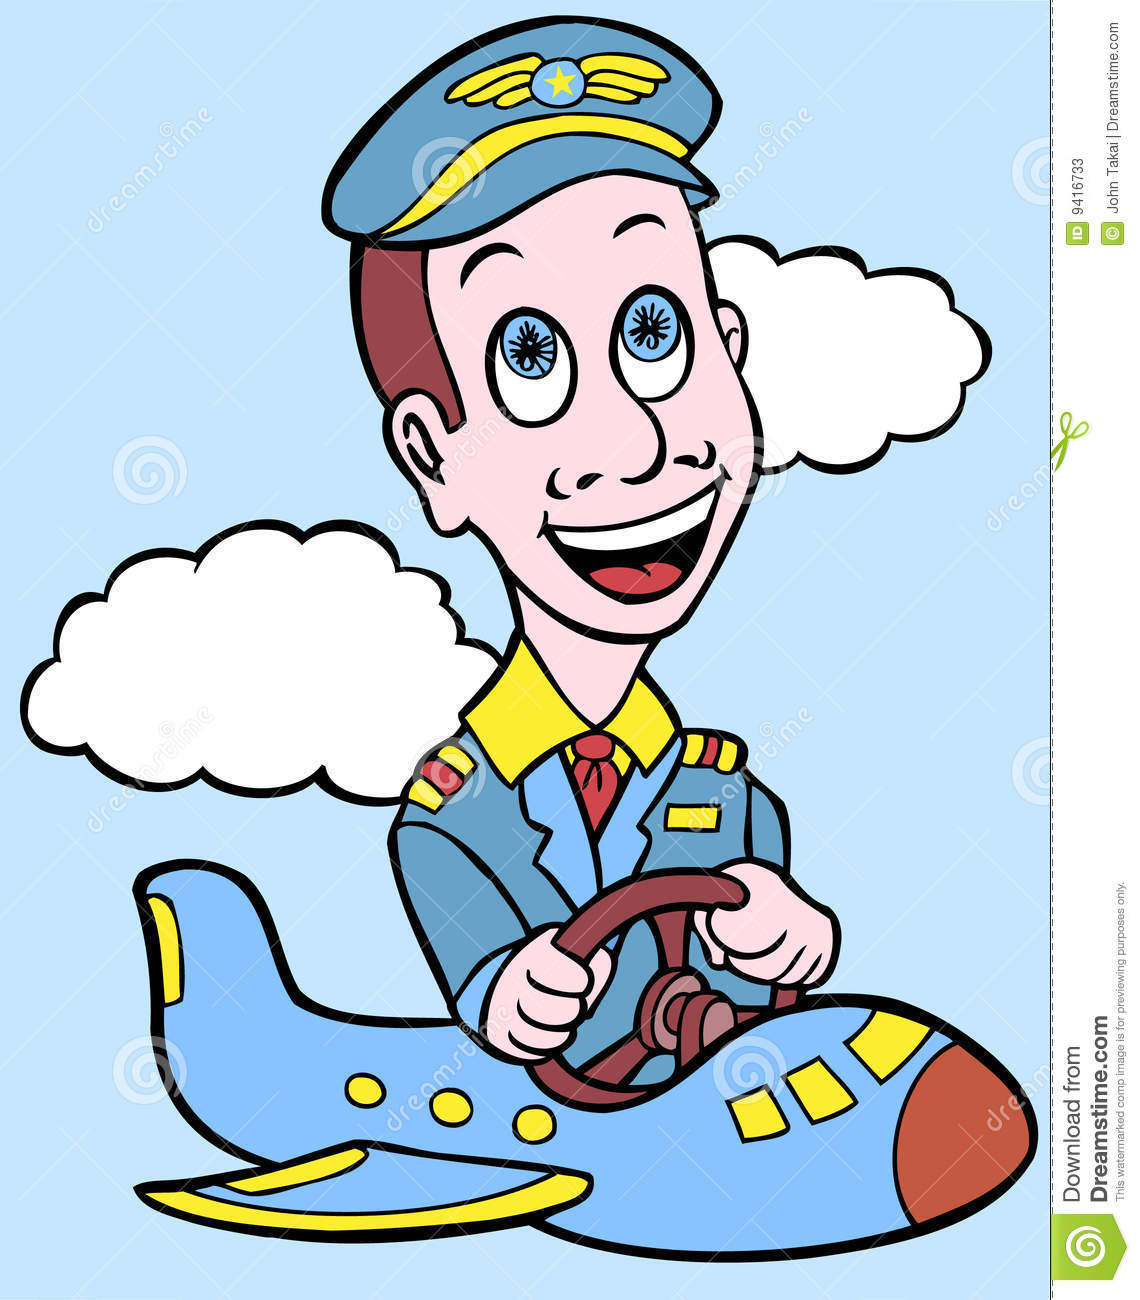 Man is piloting a tiny plane wearing a airline pilot uniform.